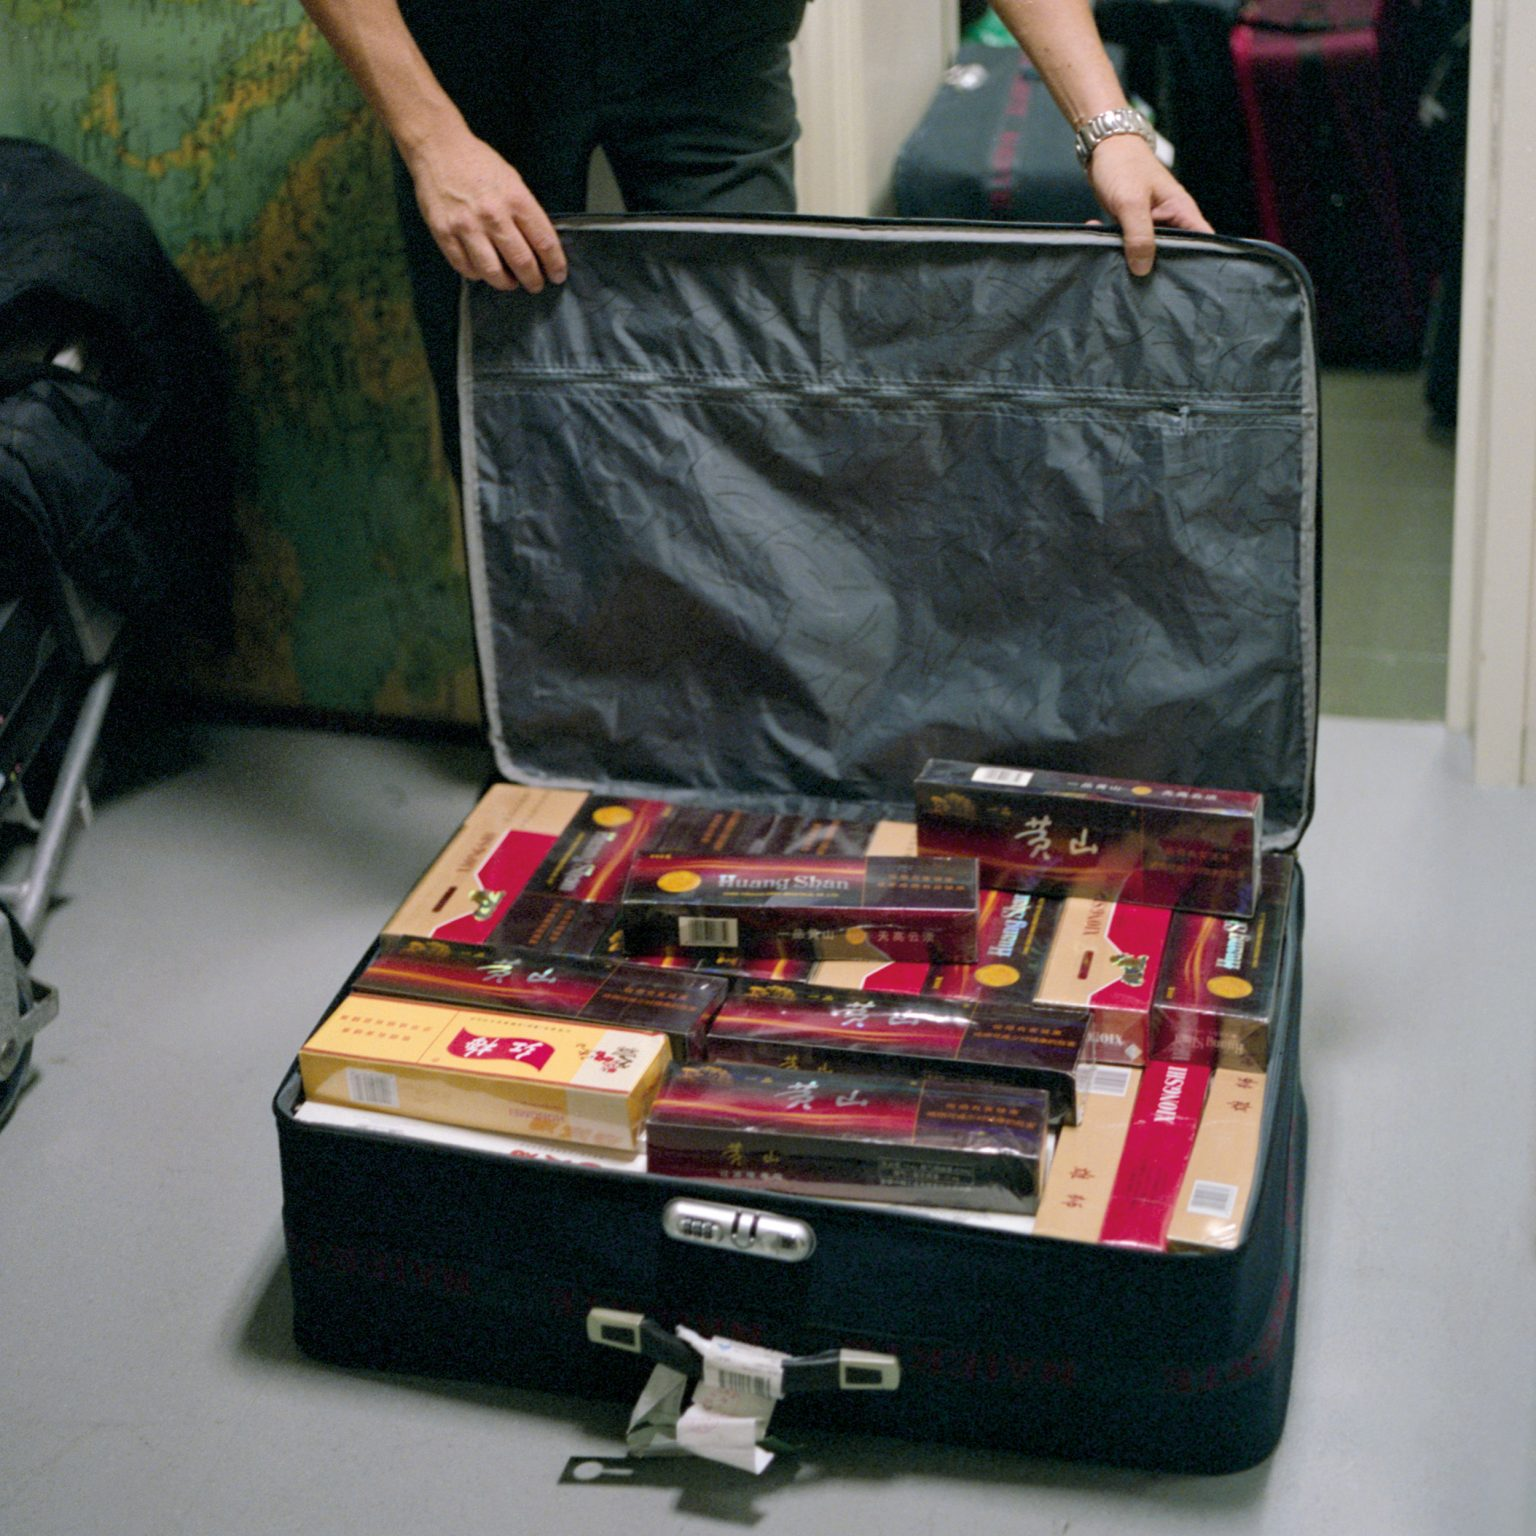 A deposit of bags utilized to smuggle cigarettes.